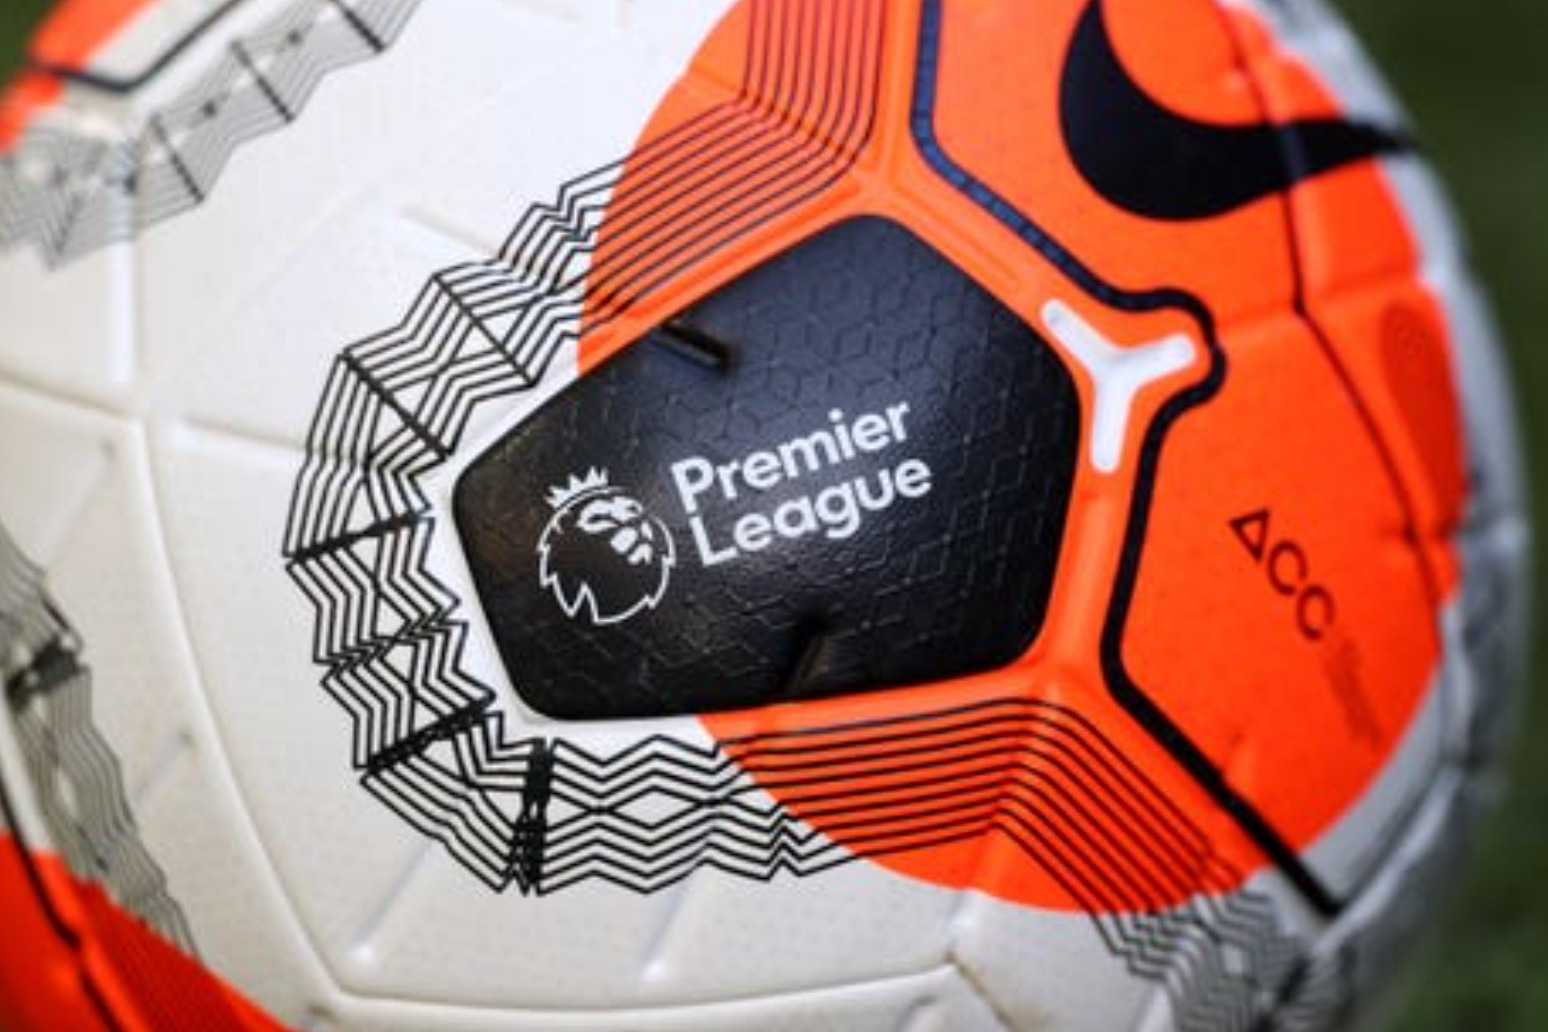 Premier League spending lowest in almost a decade